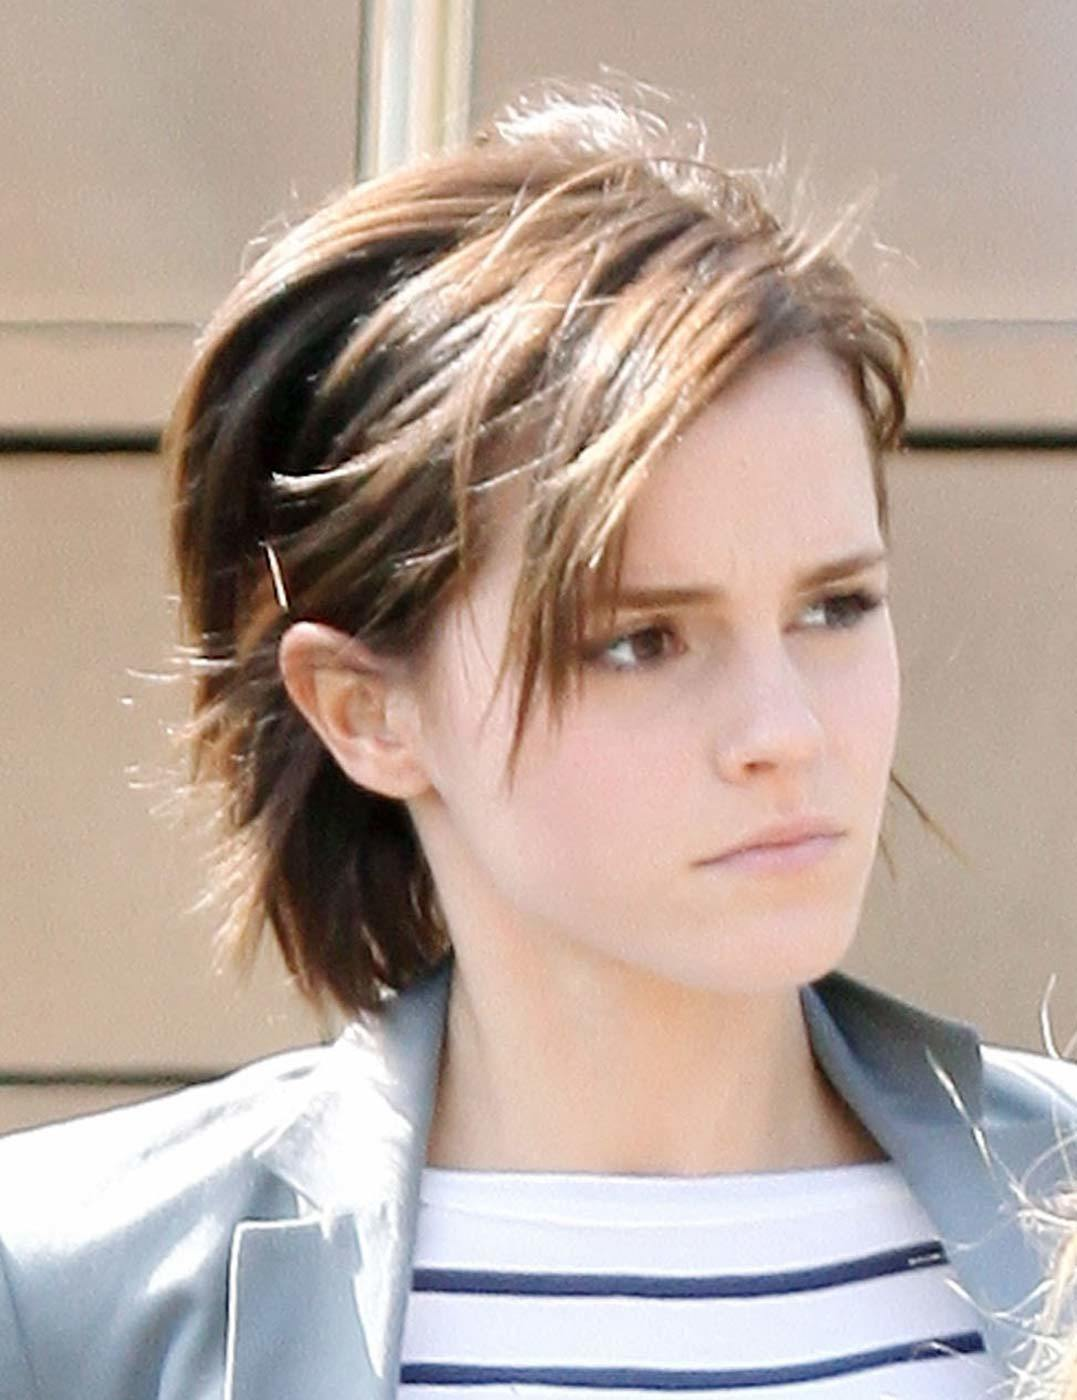 emma watson hair - photo #19